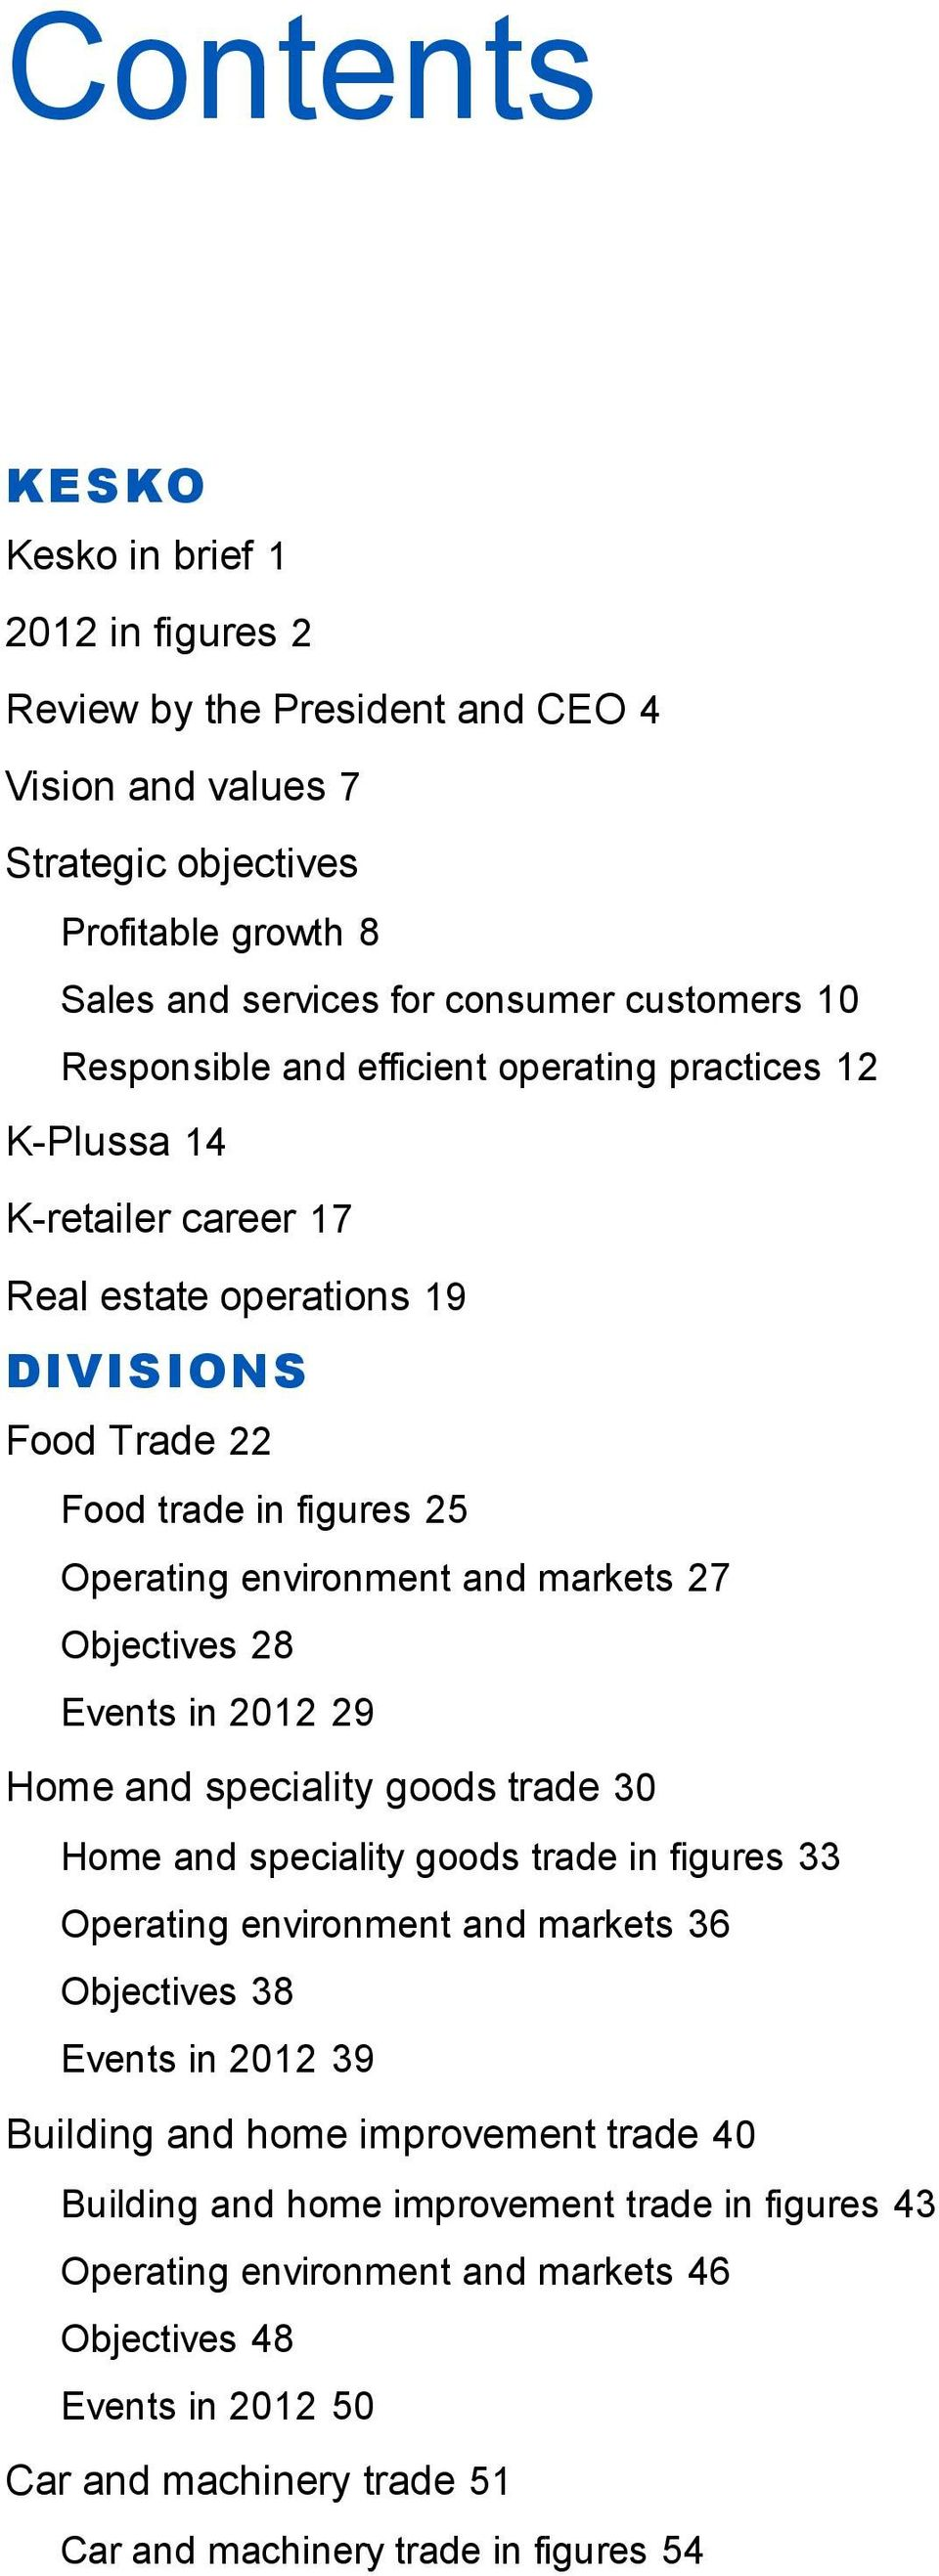 Objectives 28 Events in 2012 29 Home and speciality goods trade 30 Home and speciality goods trade in figures 33 Operating environment and markets 36 Objectives 38 Events in 2012 39 Building and